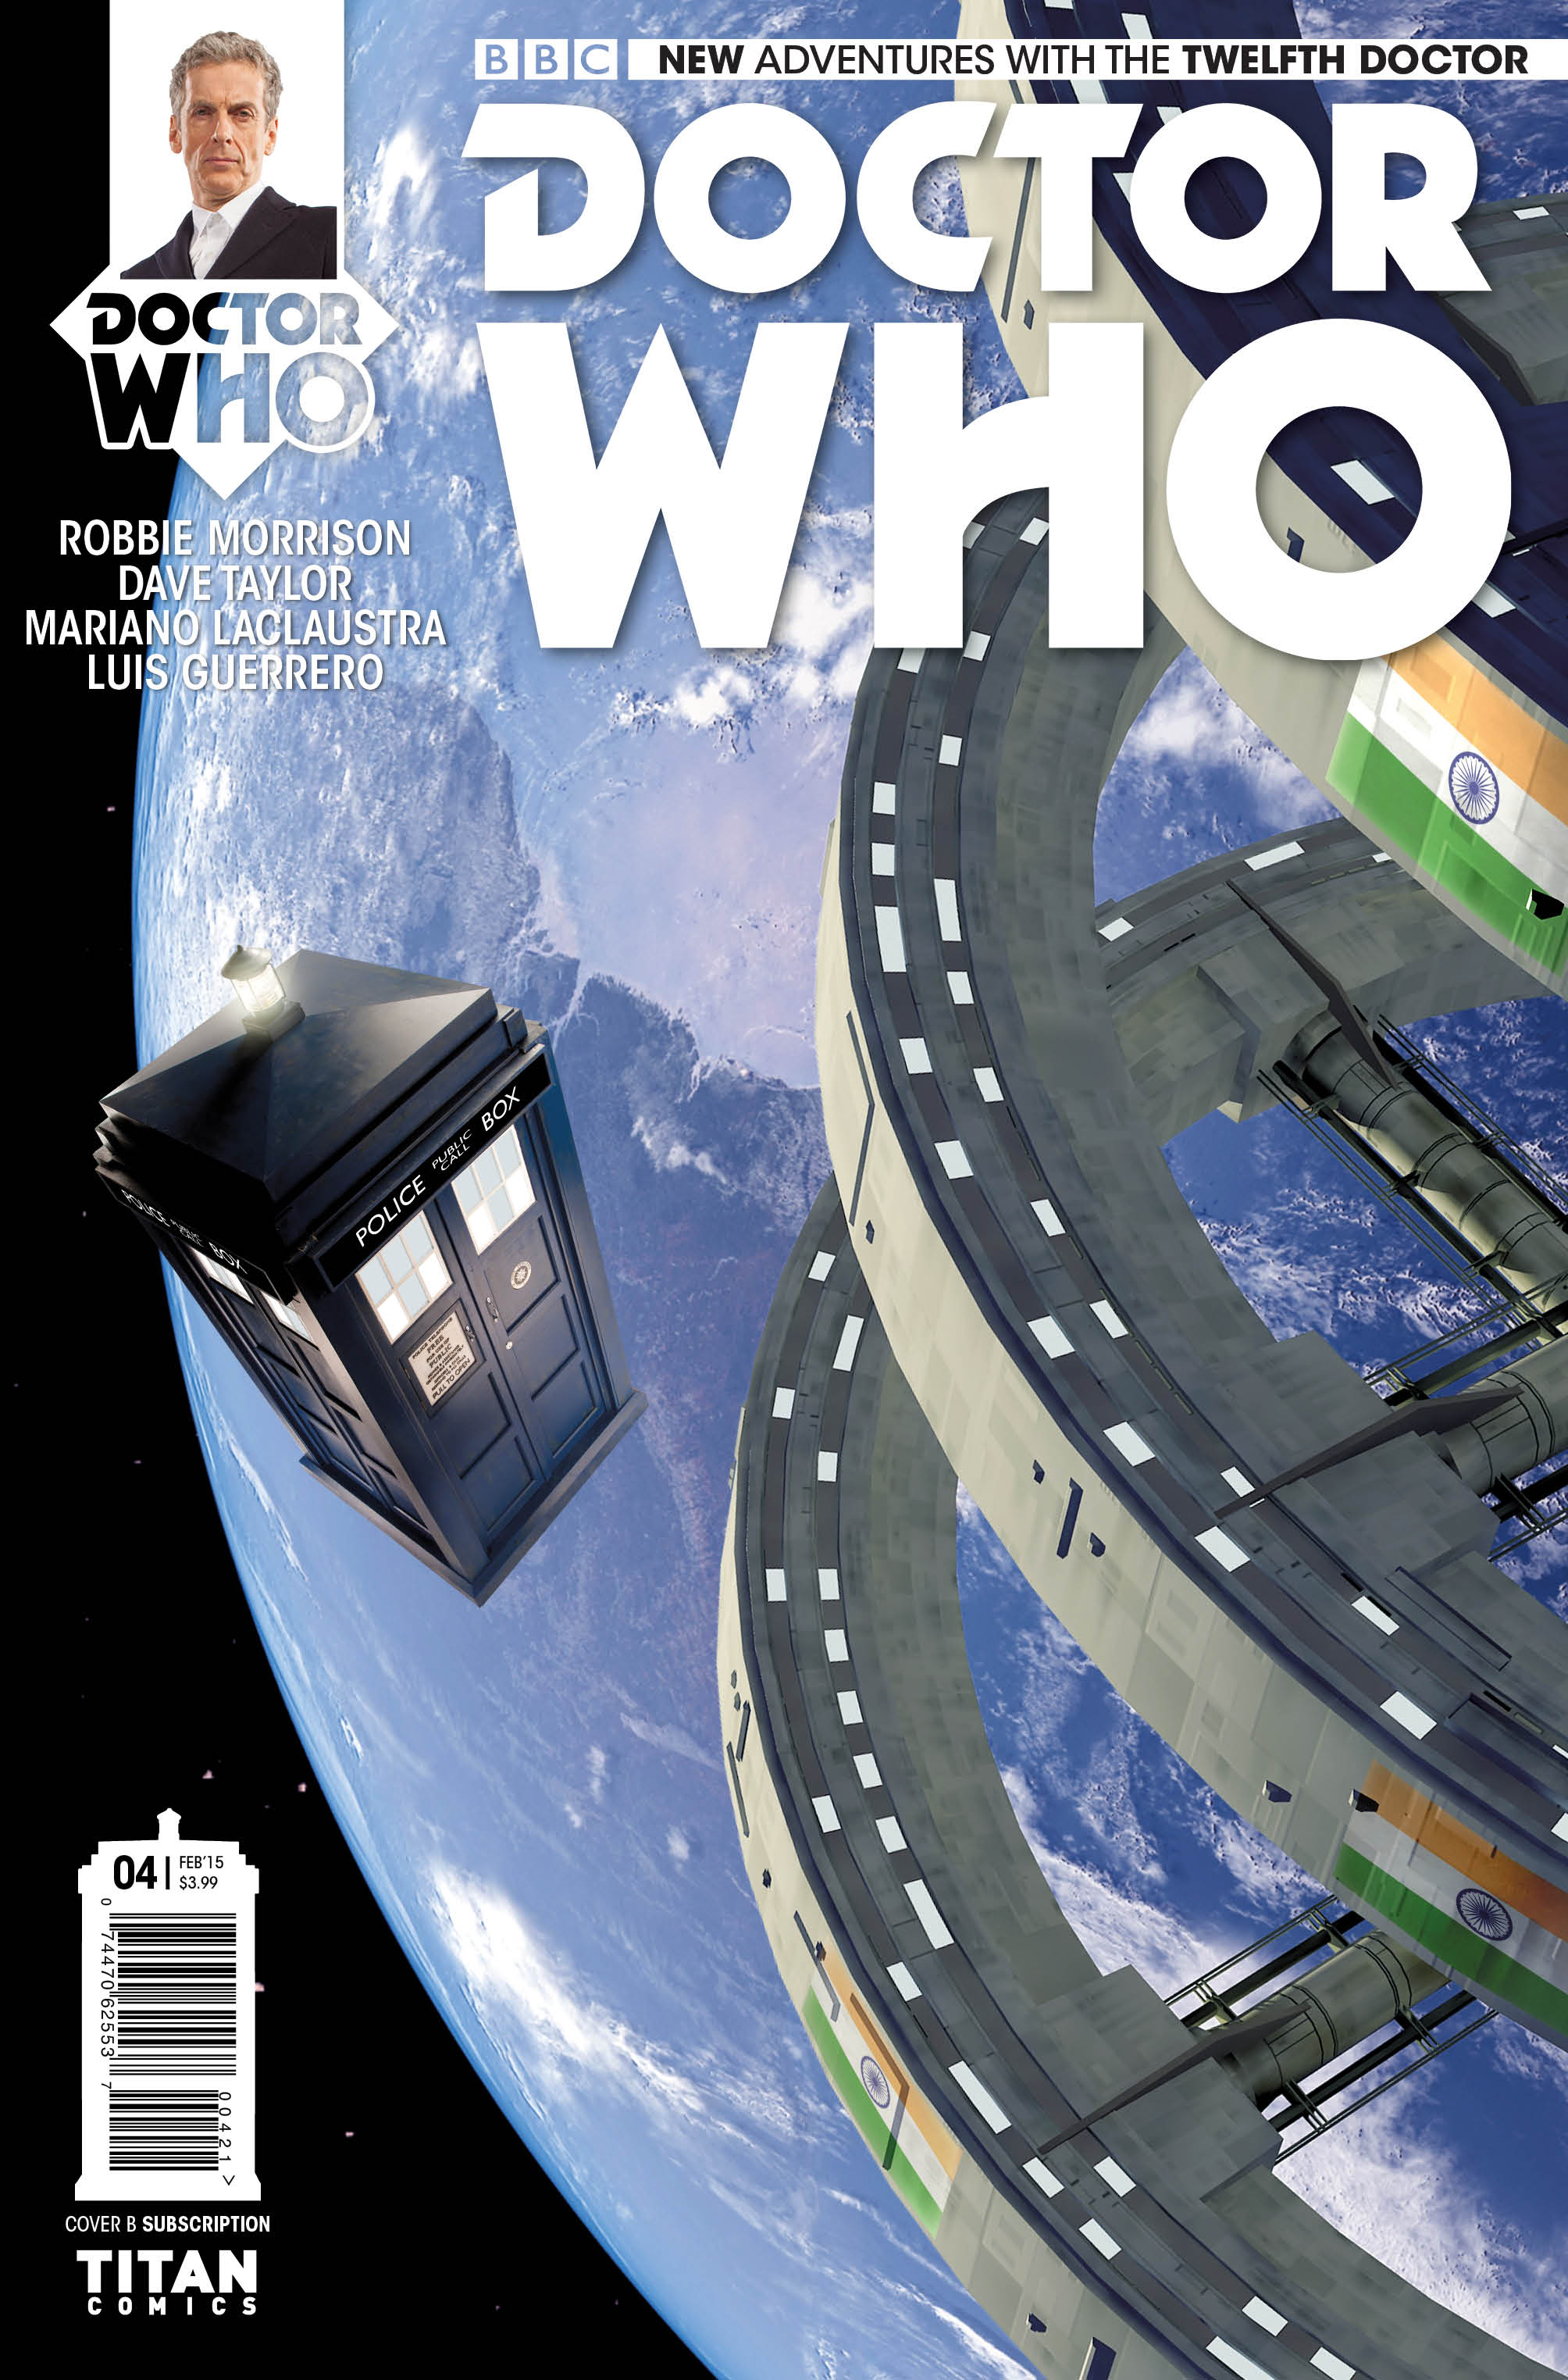 Doctor Who: The Twelfth Doctor #4 (Credit: Titan)